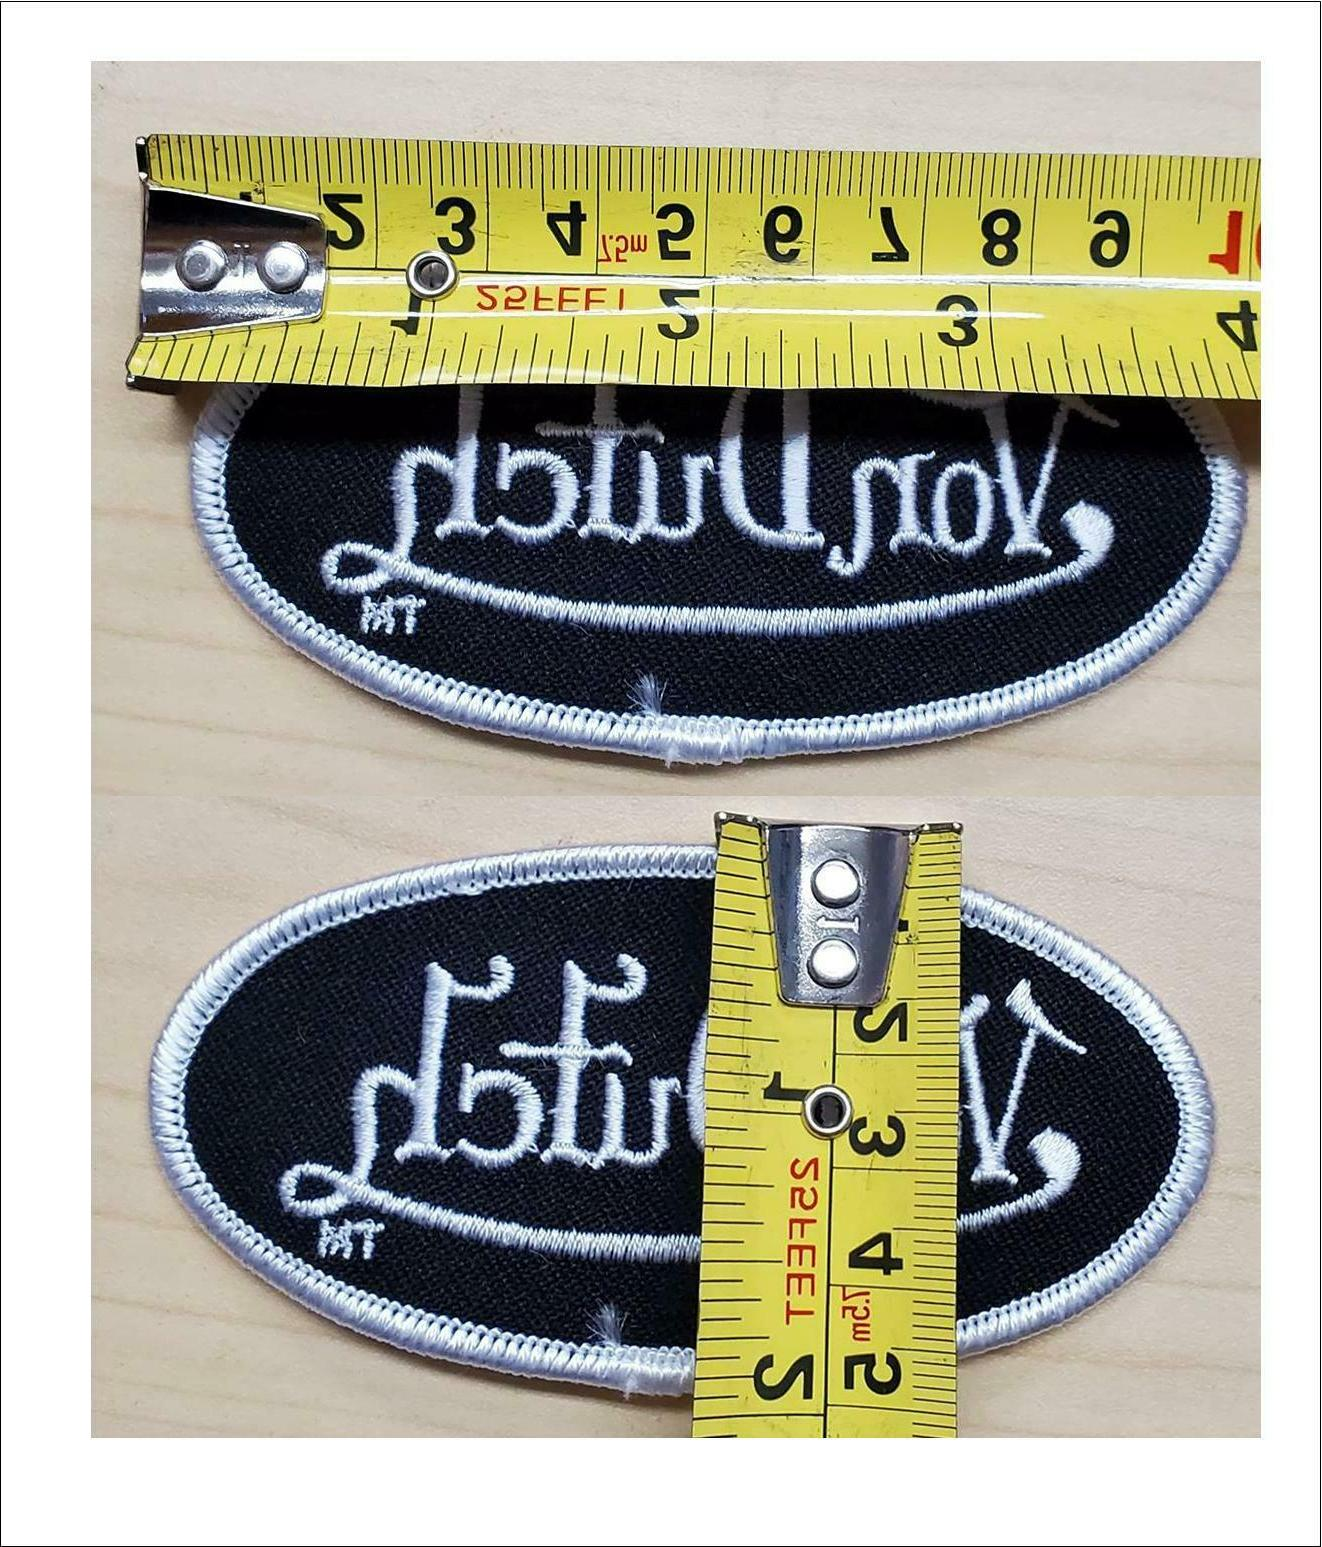 New DUTCH OVAL PATCH Black Sew or Iron on